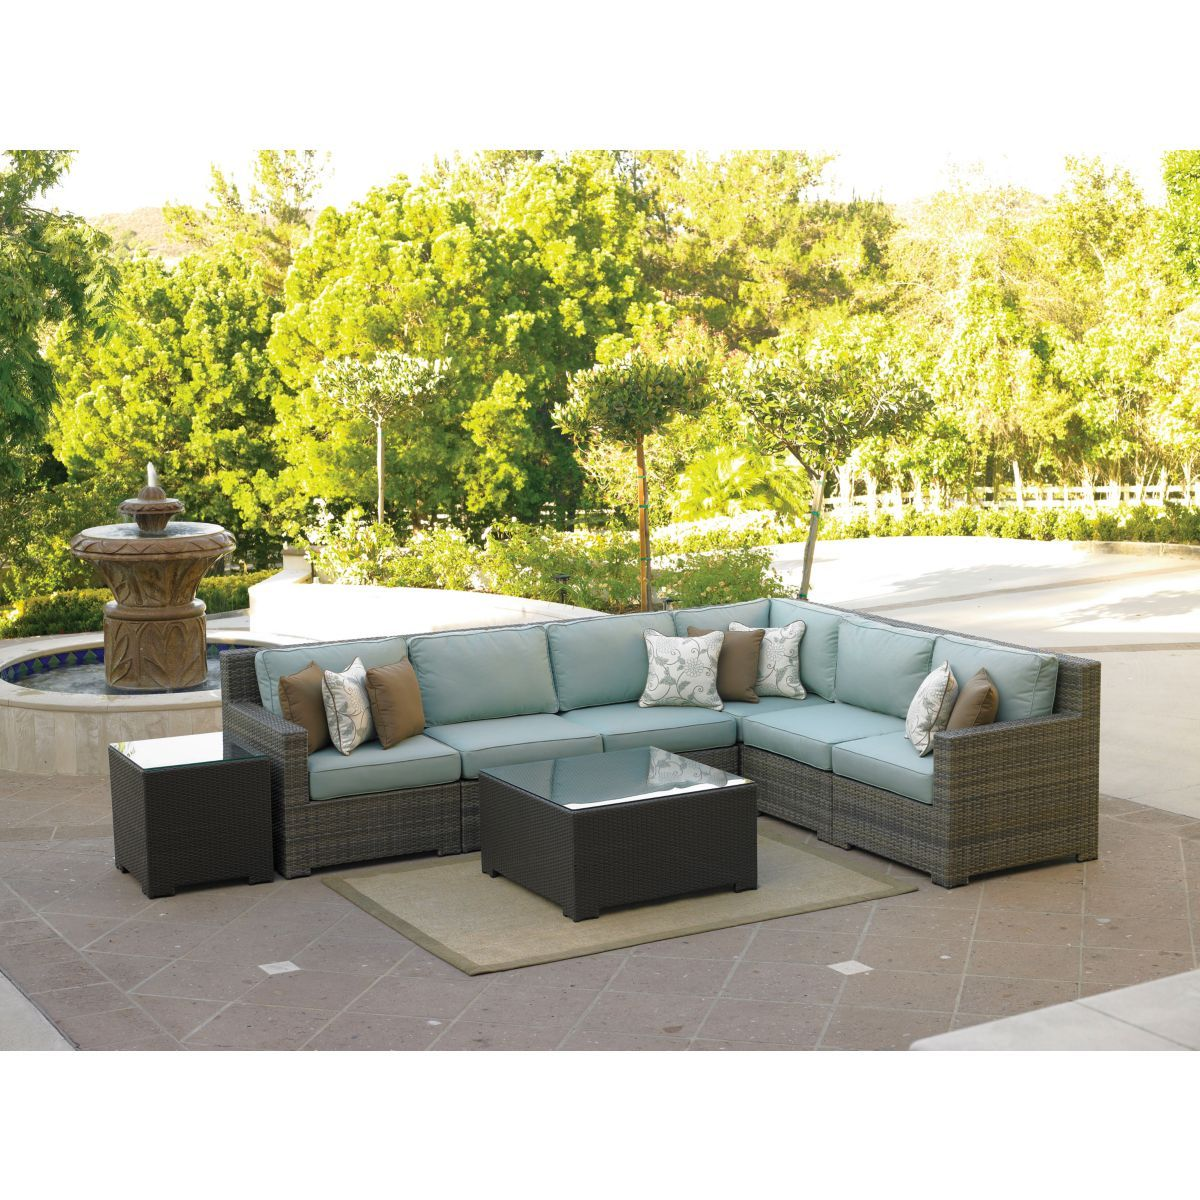 Malibu Sectional With Cushions Northcape Patio Furniture Patio Furniture Teak Patio Furniture